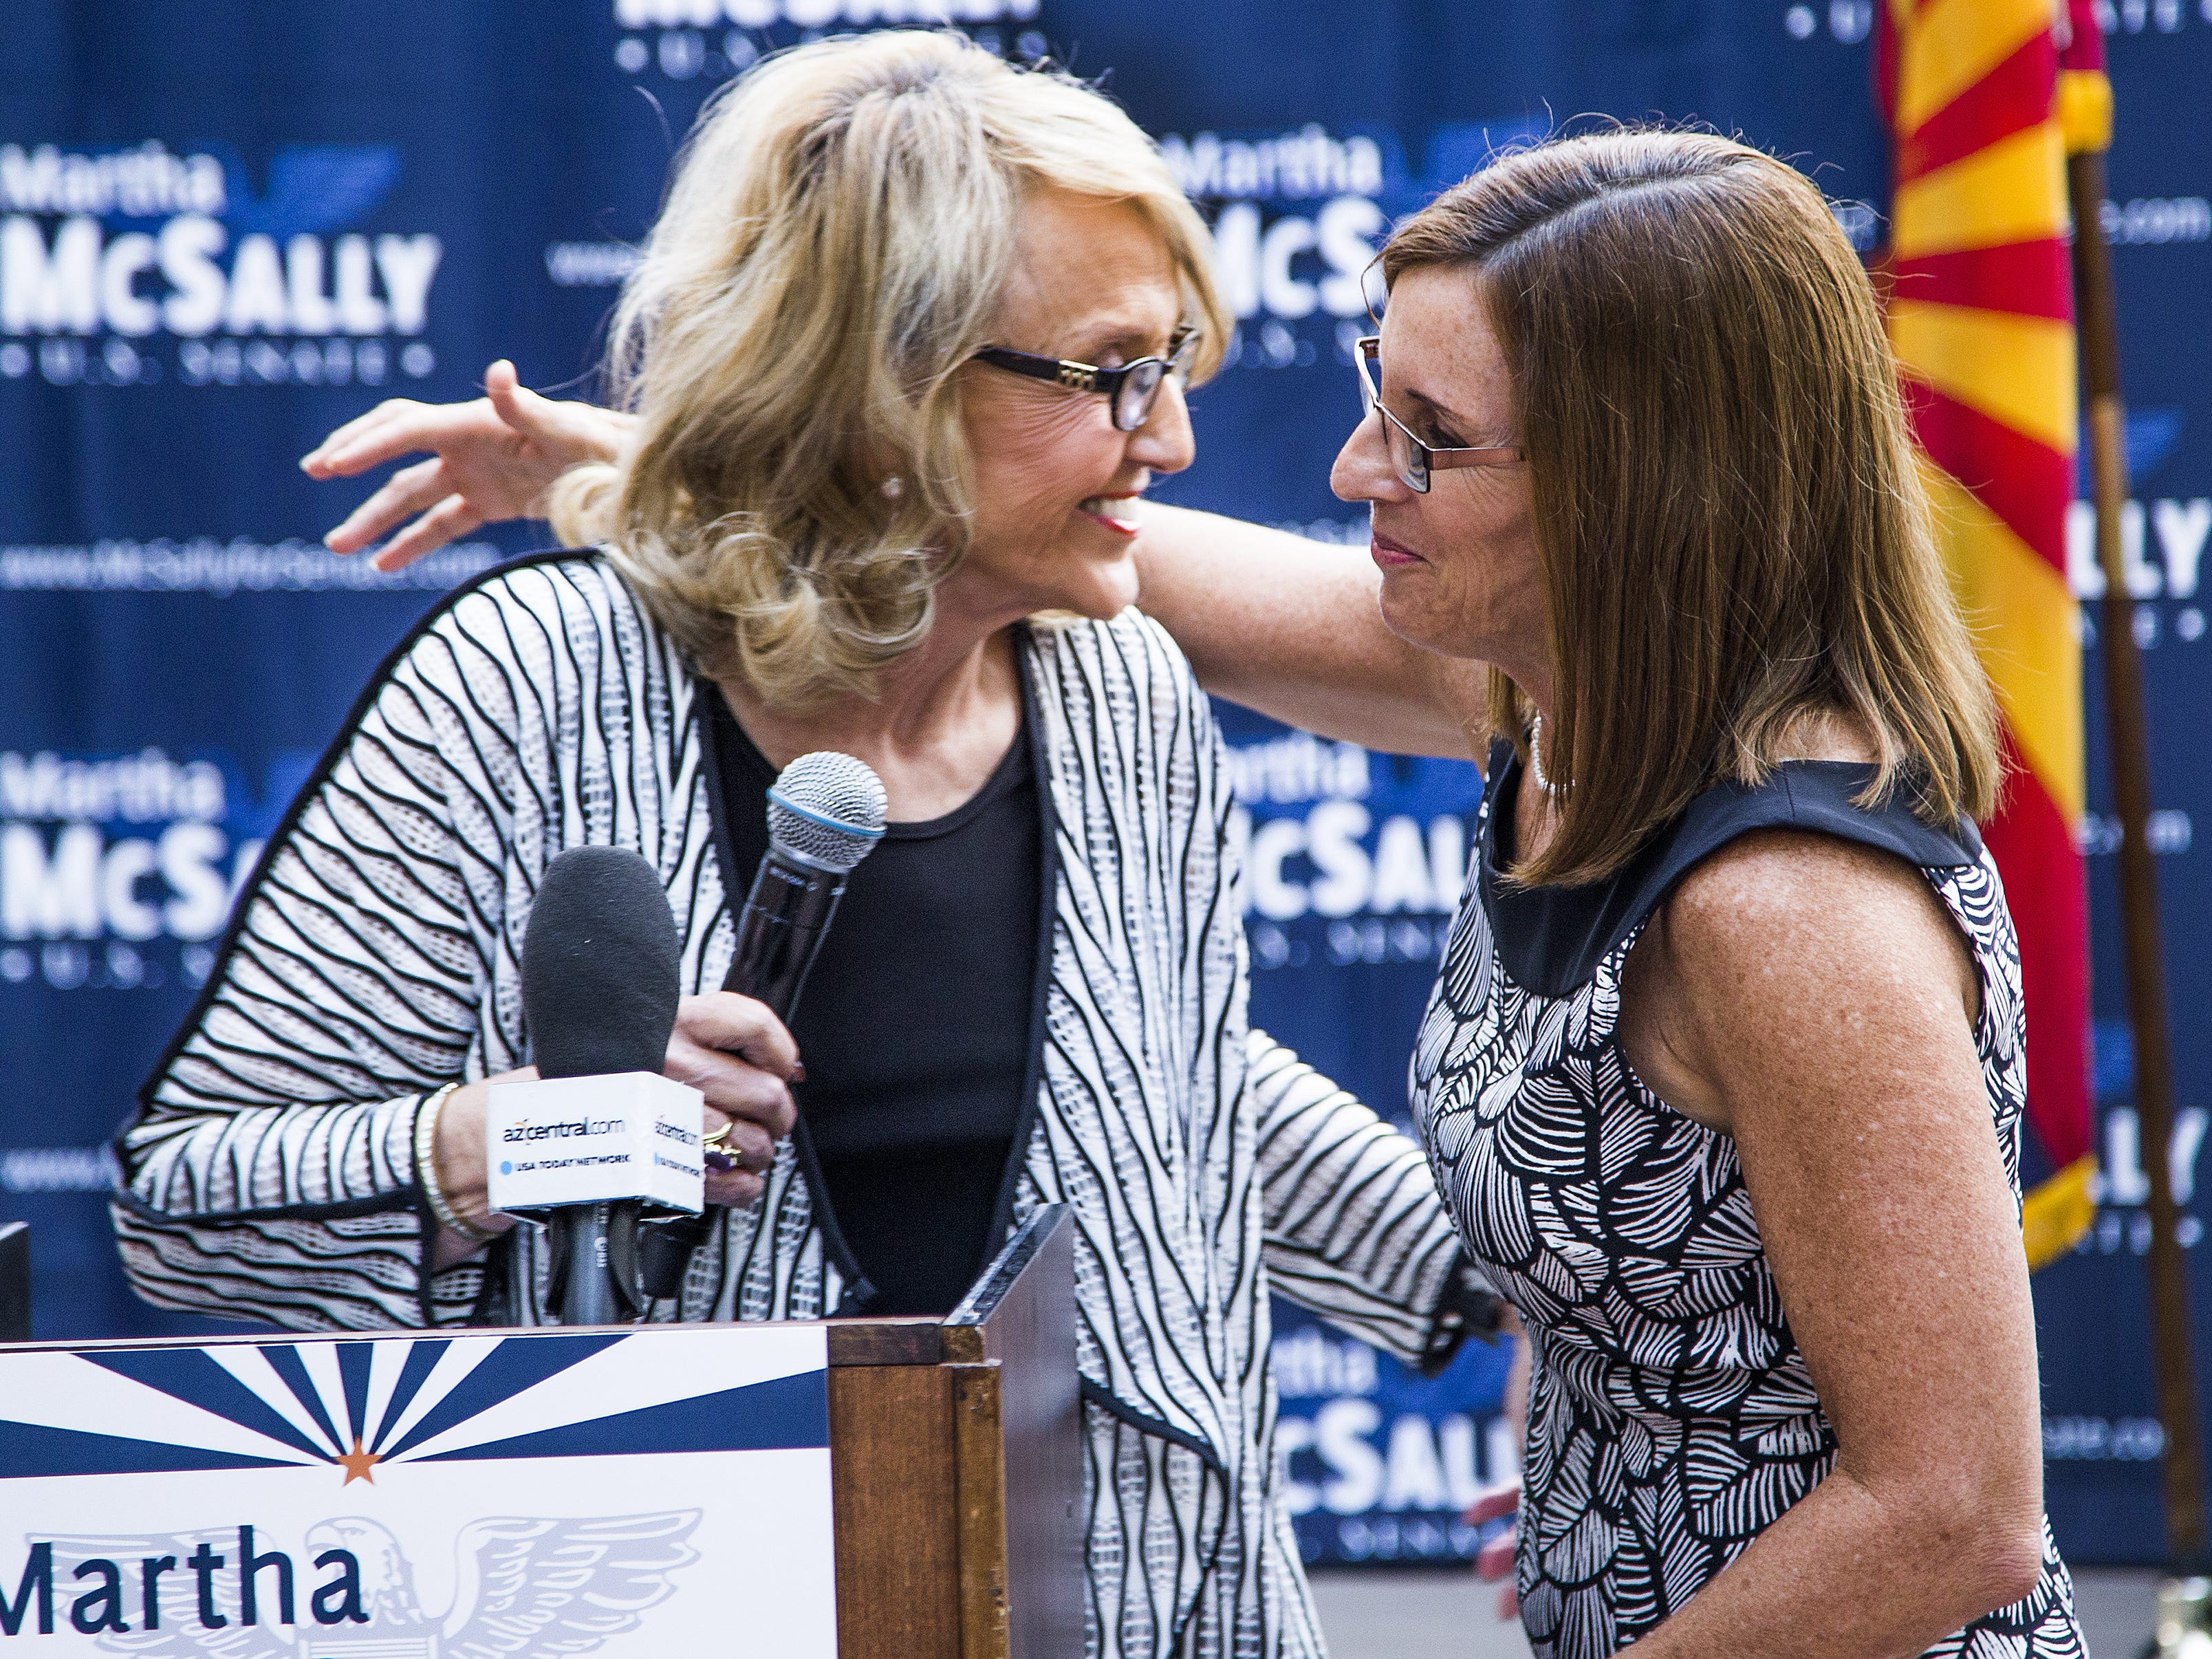 U.S. Rep. Martha McSally (right) gets a hug from former Arizona Gov. Jan Brewer as McSally is introduced at an event in Phoenix announcing a coalition of women on Aug. 15, 2018.